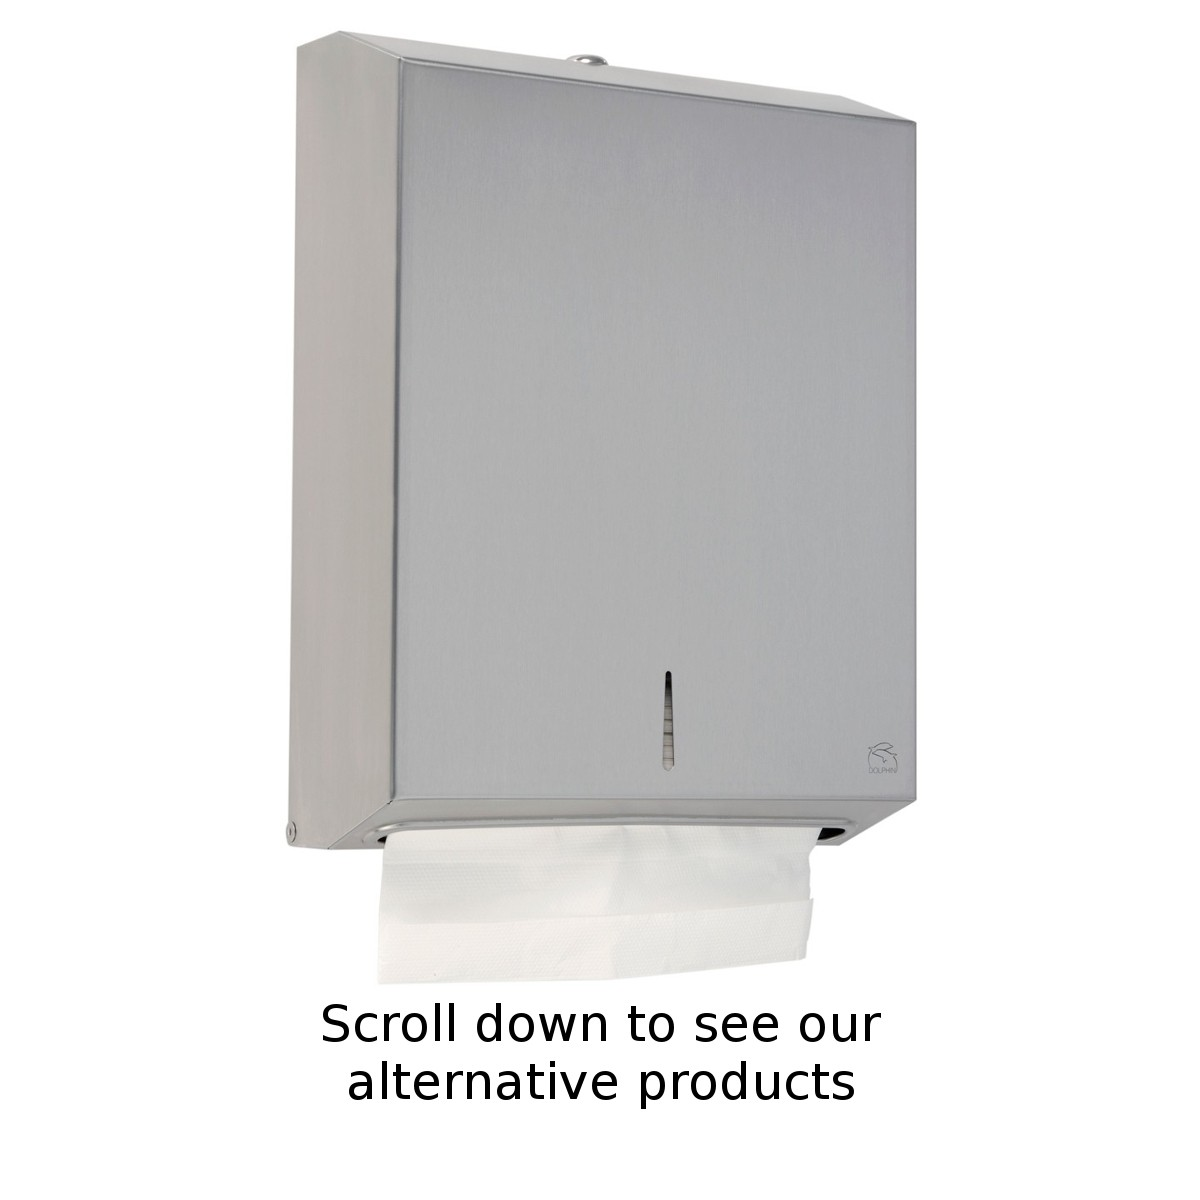 dolphin bc928 stainless steel maxi paper towel dispenser - Paper Towel Dispenser